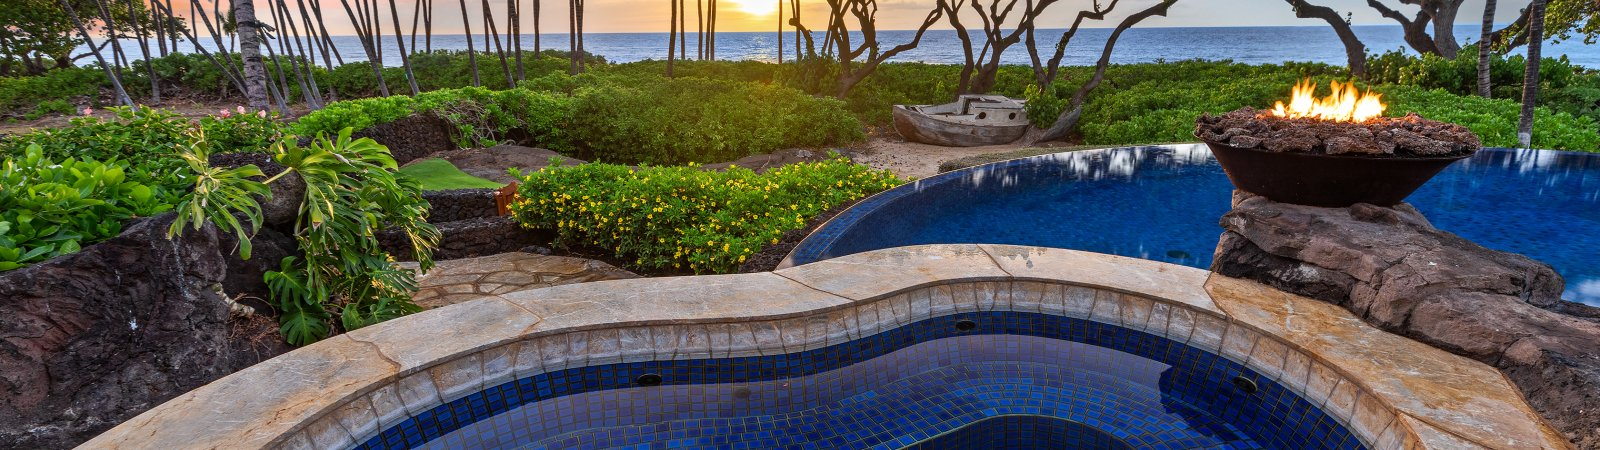 Hawaii Shared Ownership - Own Luxury Hawaii Real Estate